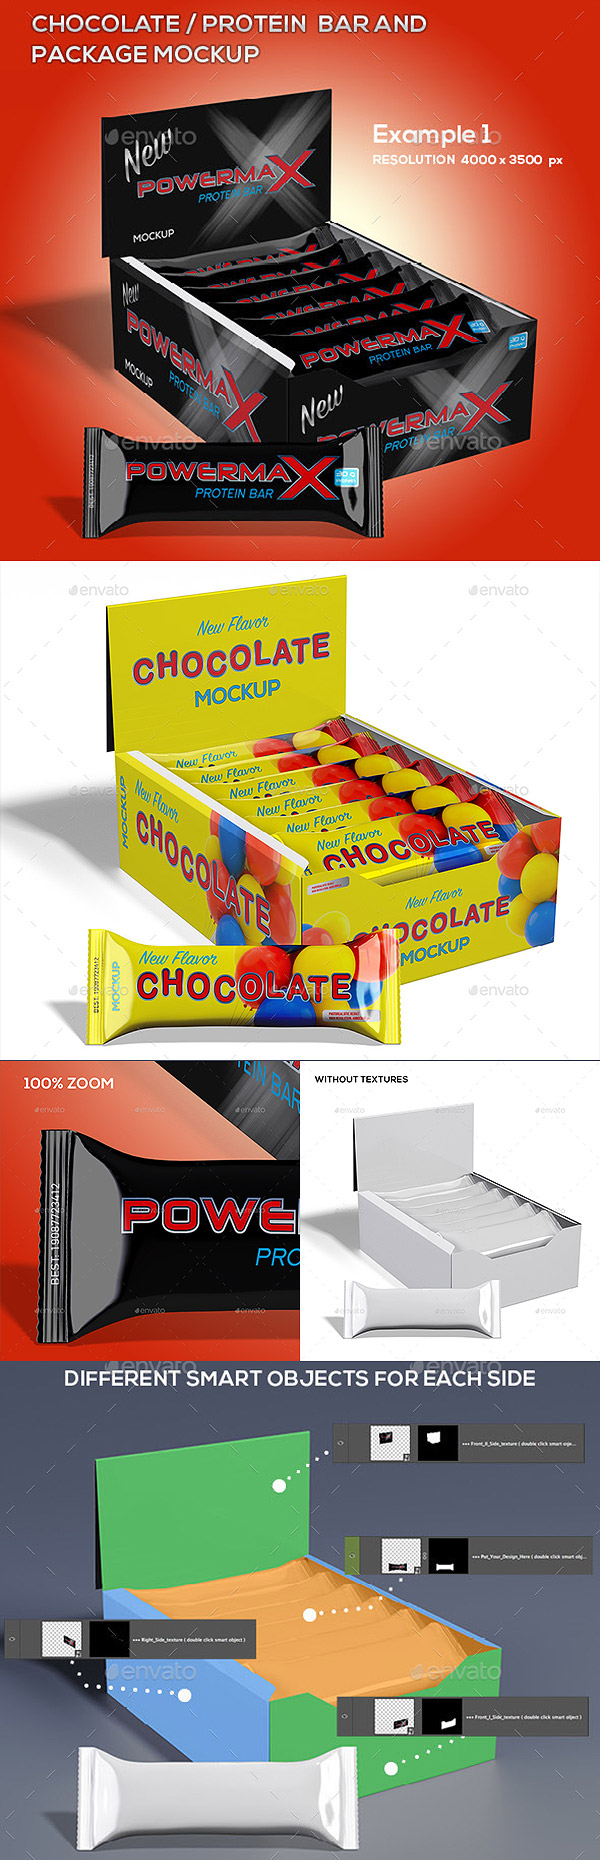 Chocolate / Protein Bar And Package Mockup